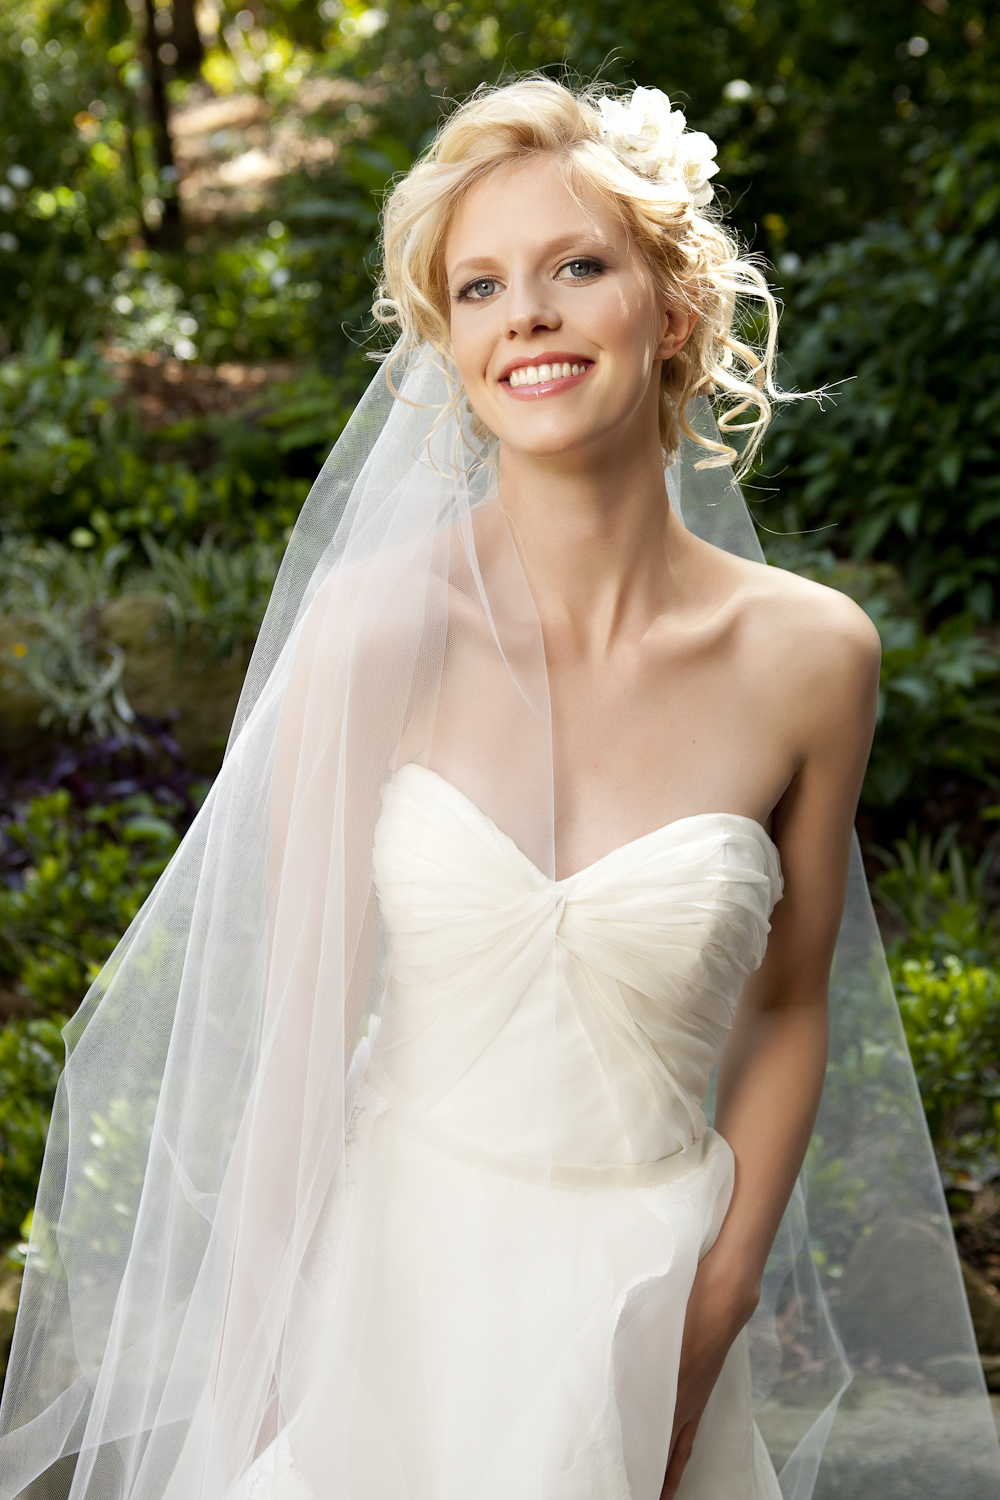 Fern bridal design   Tanya Anic  _ photography _ Luke Drew.jpg